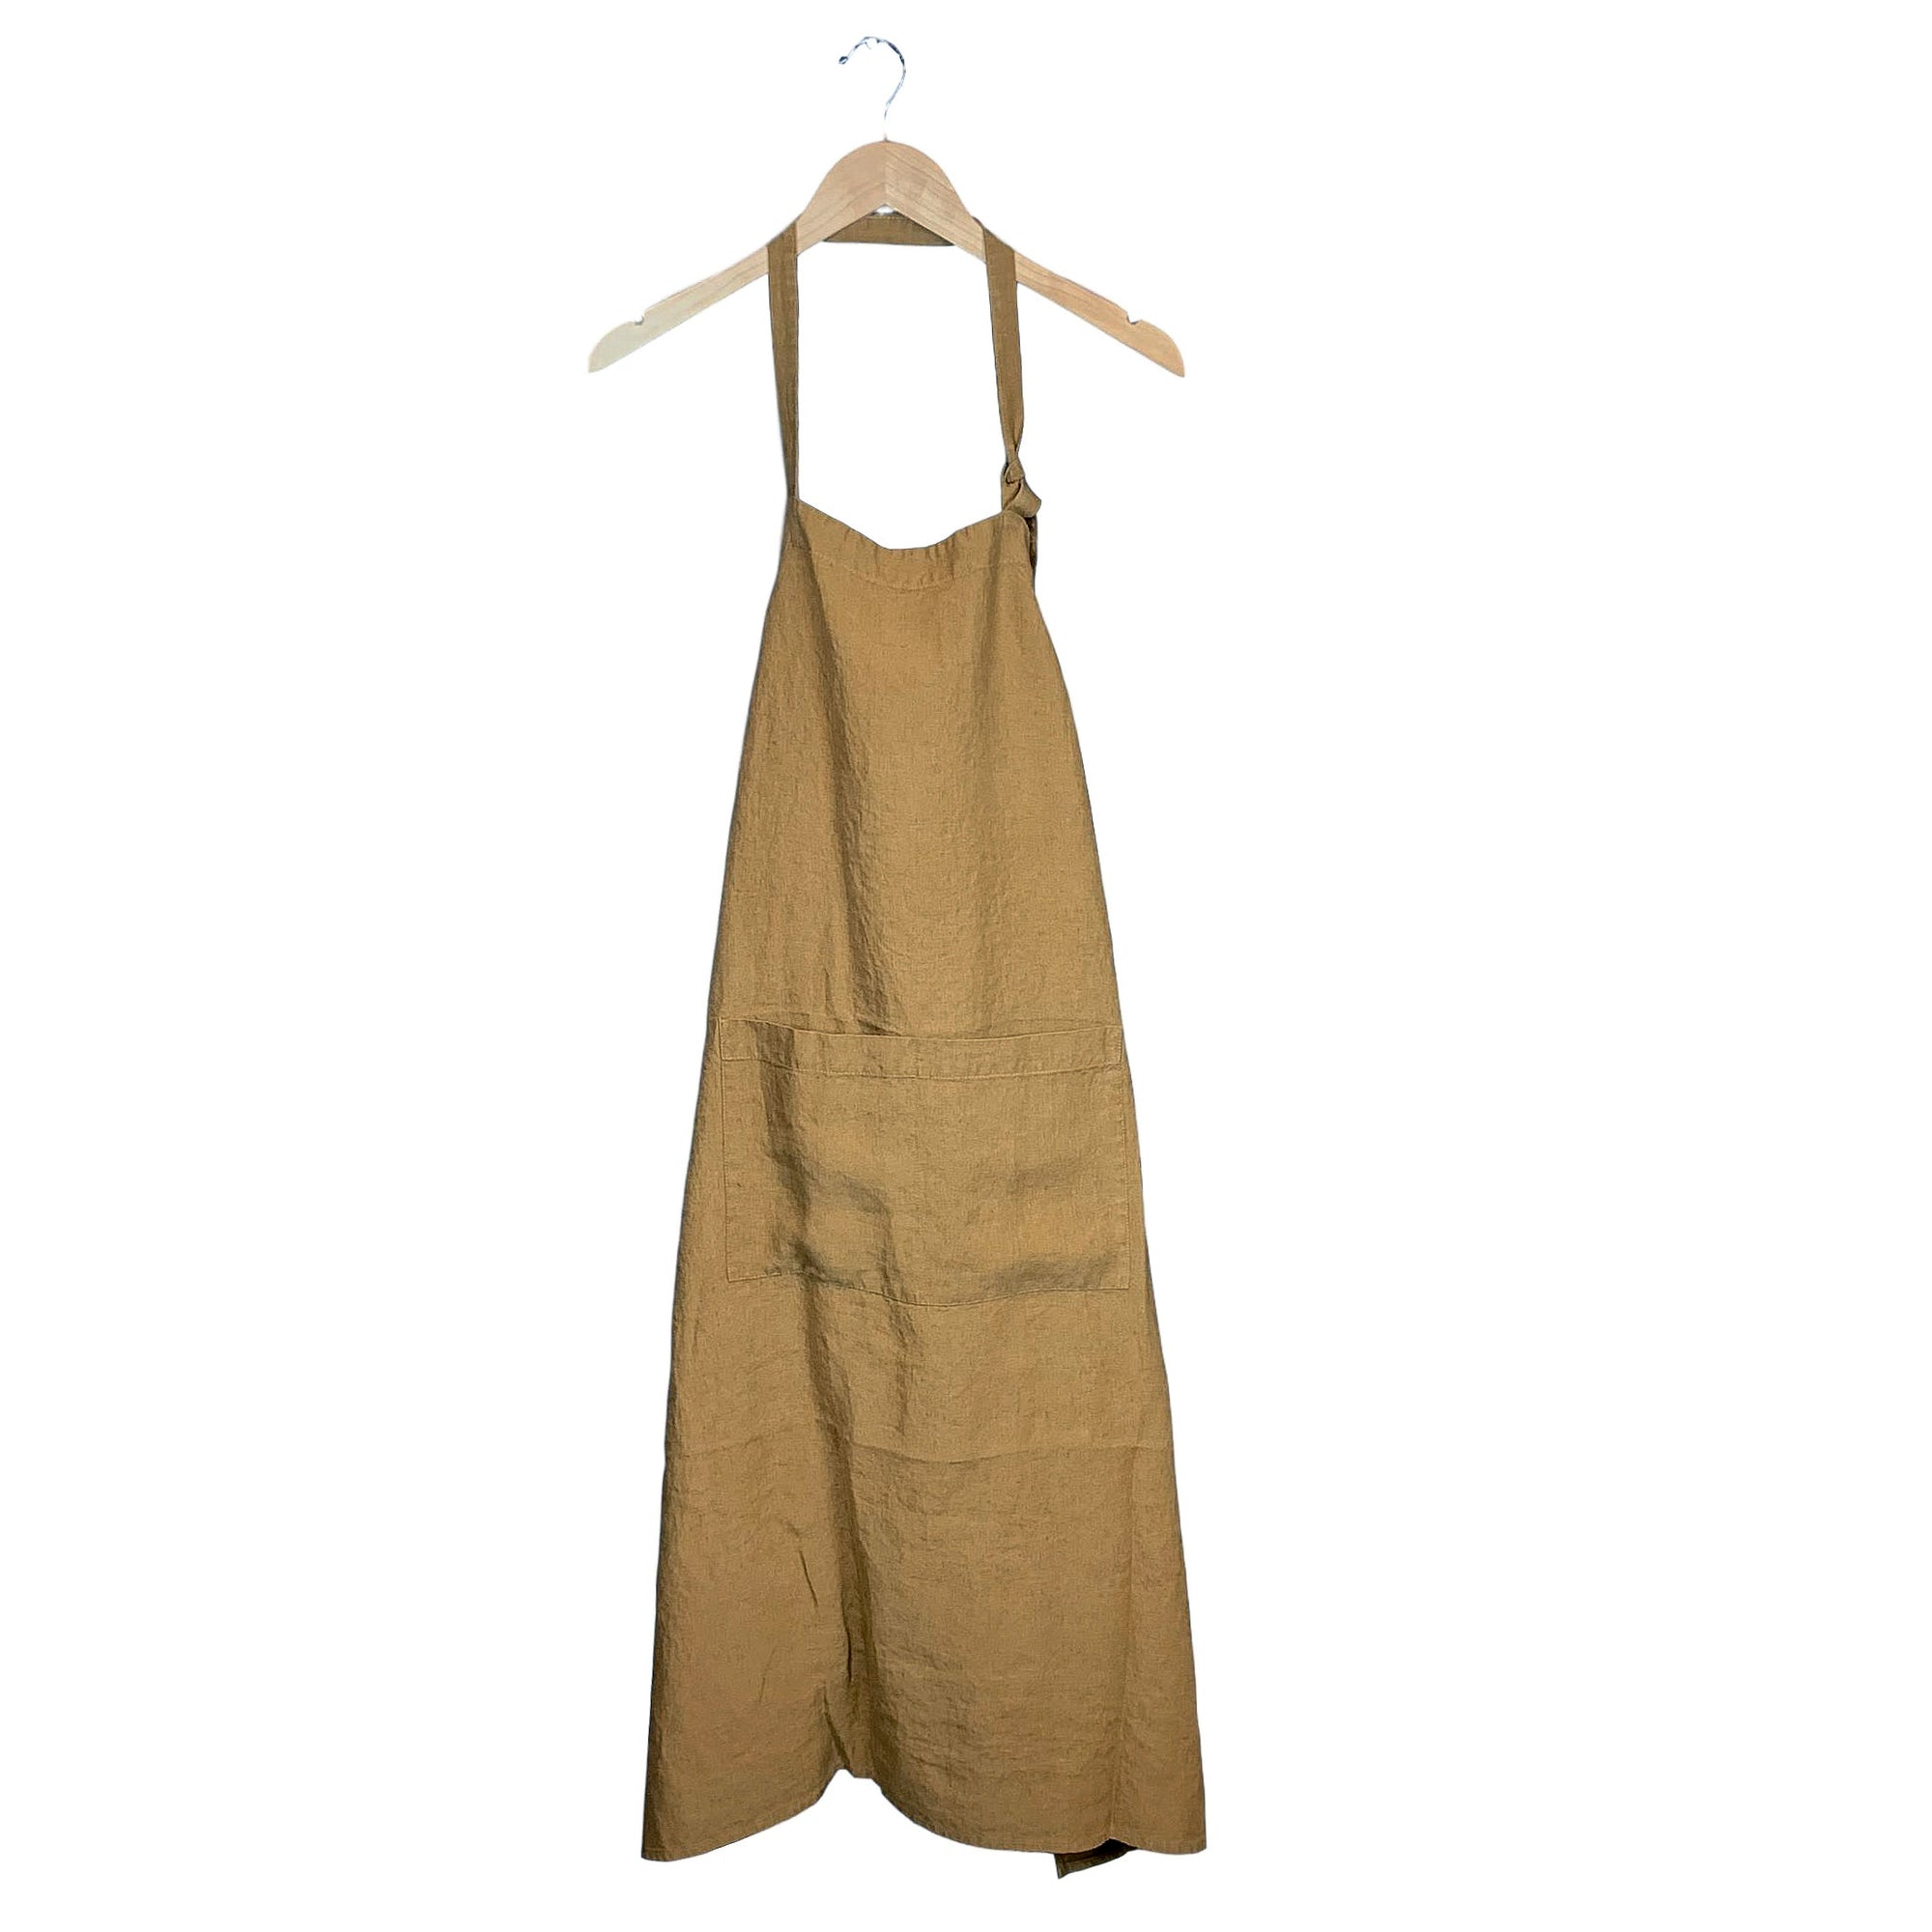 .Brown Linen Apron *more colors available*